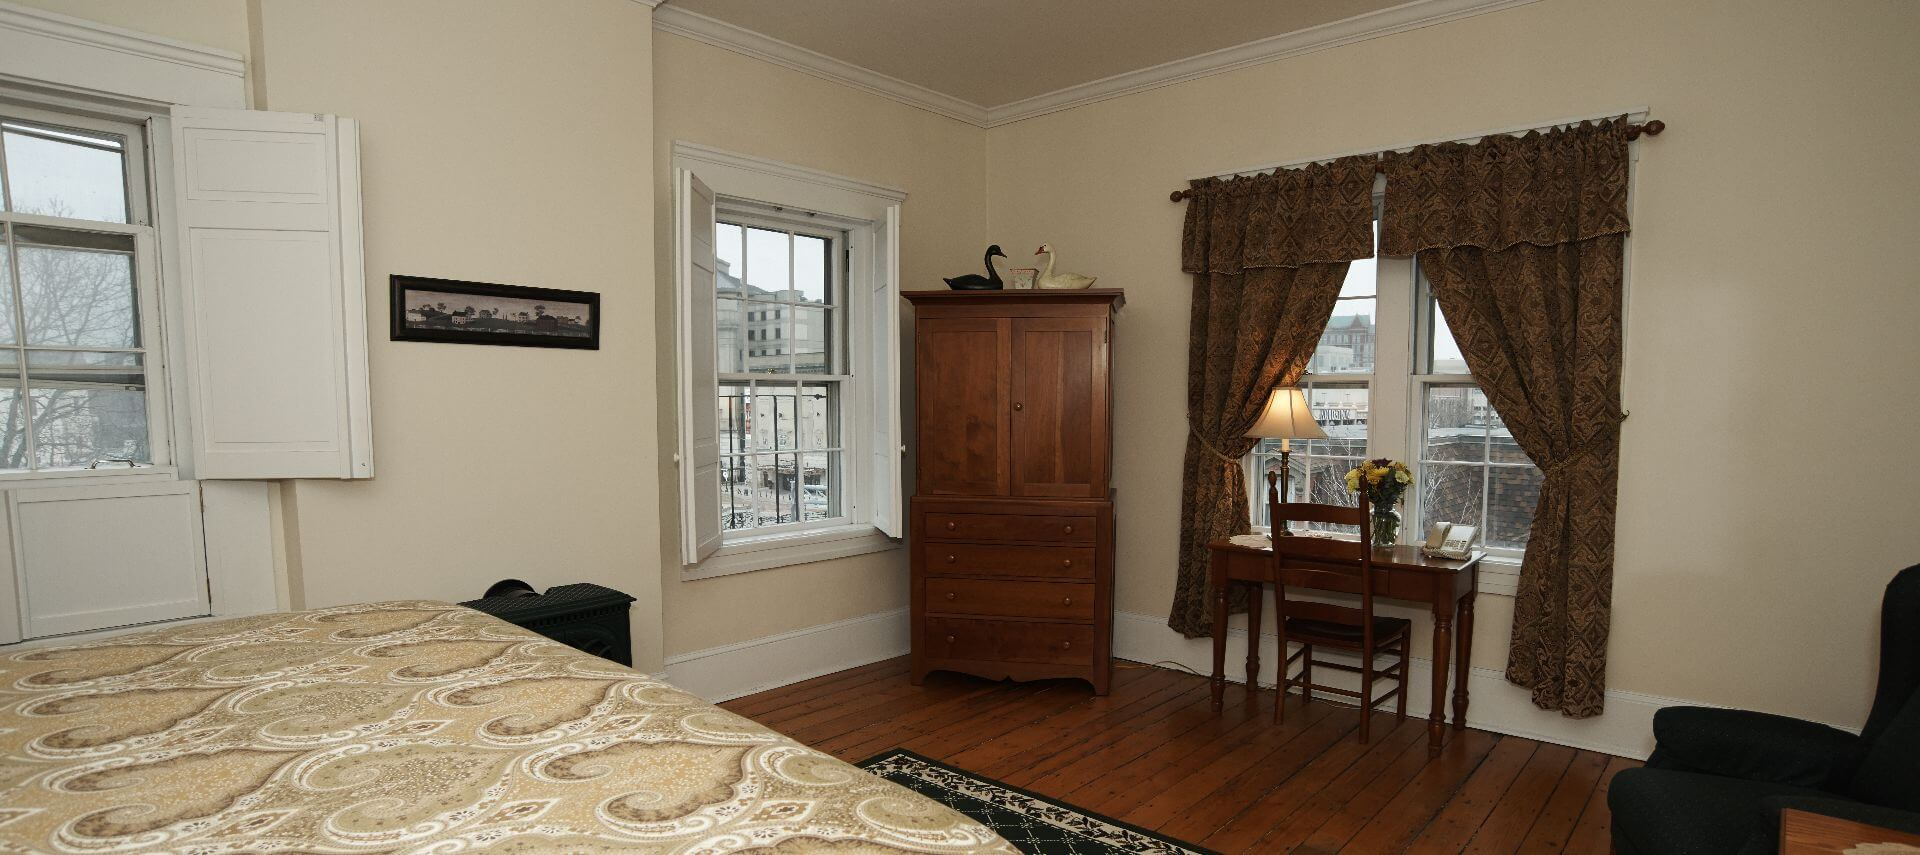 Big bright bedroom with large windows, a wooden armoire and a desk.